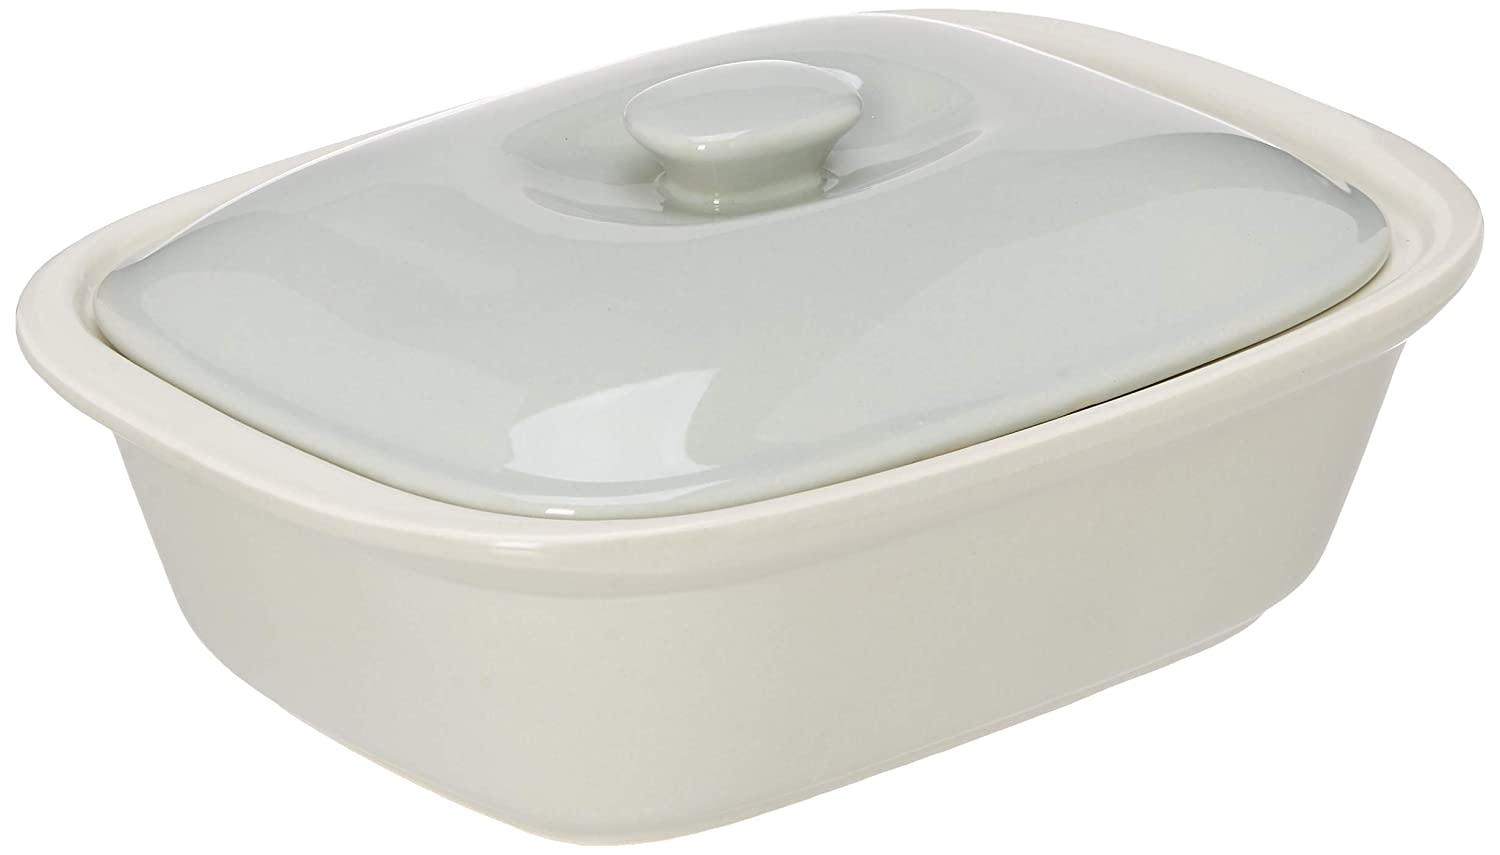 10.5x7.5x3 Off-White Le Regalo HW1232 Stoneware Rectangular Bakeware Dish with Lid